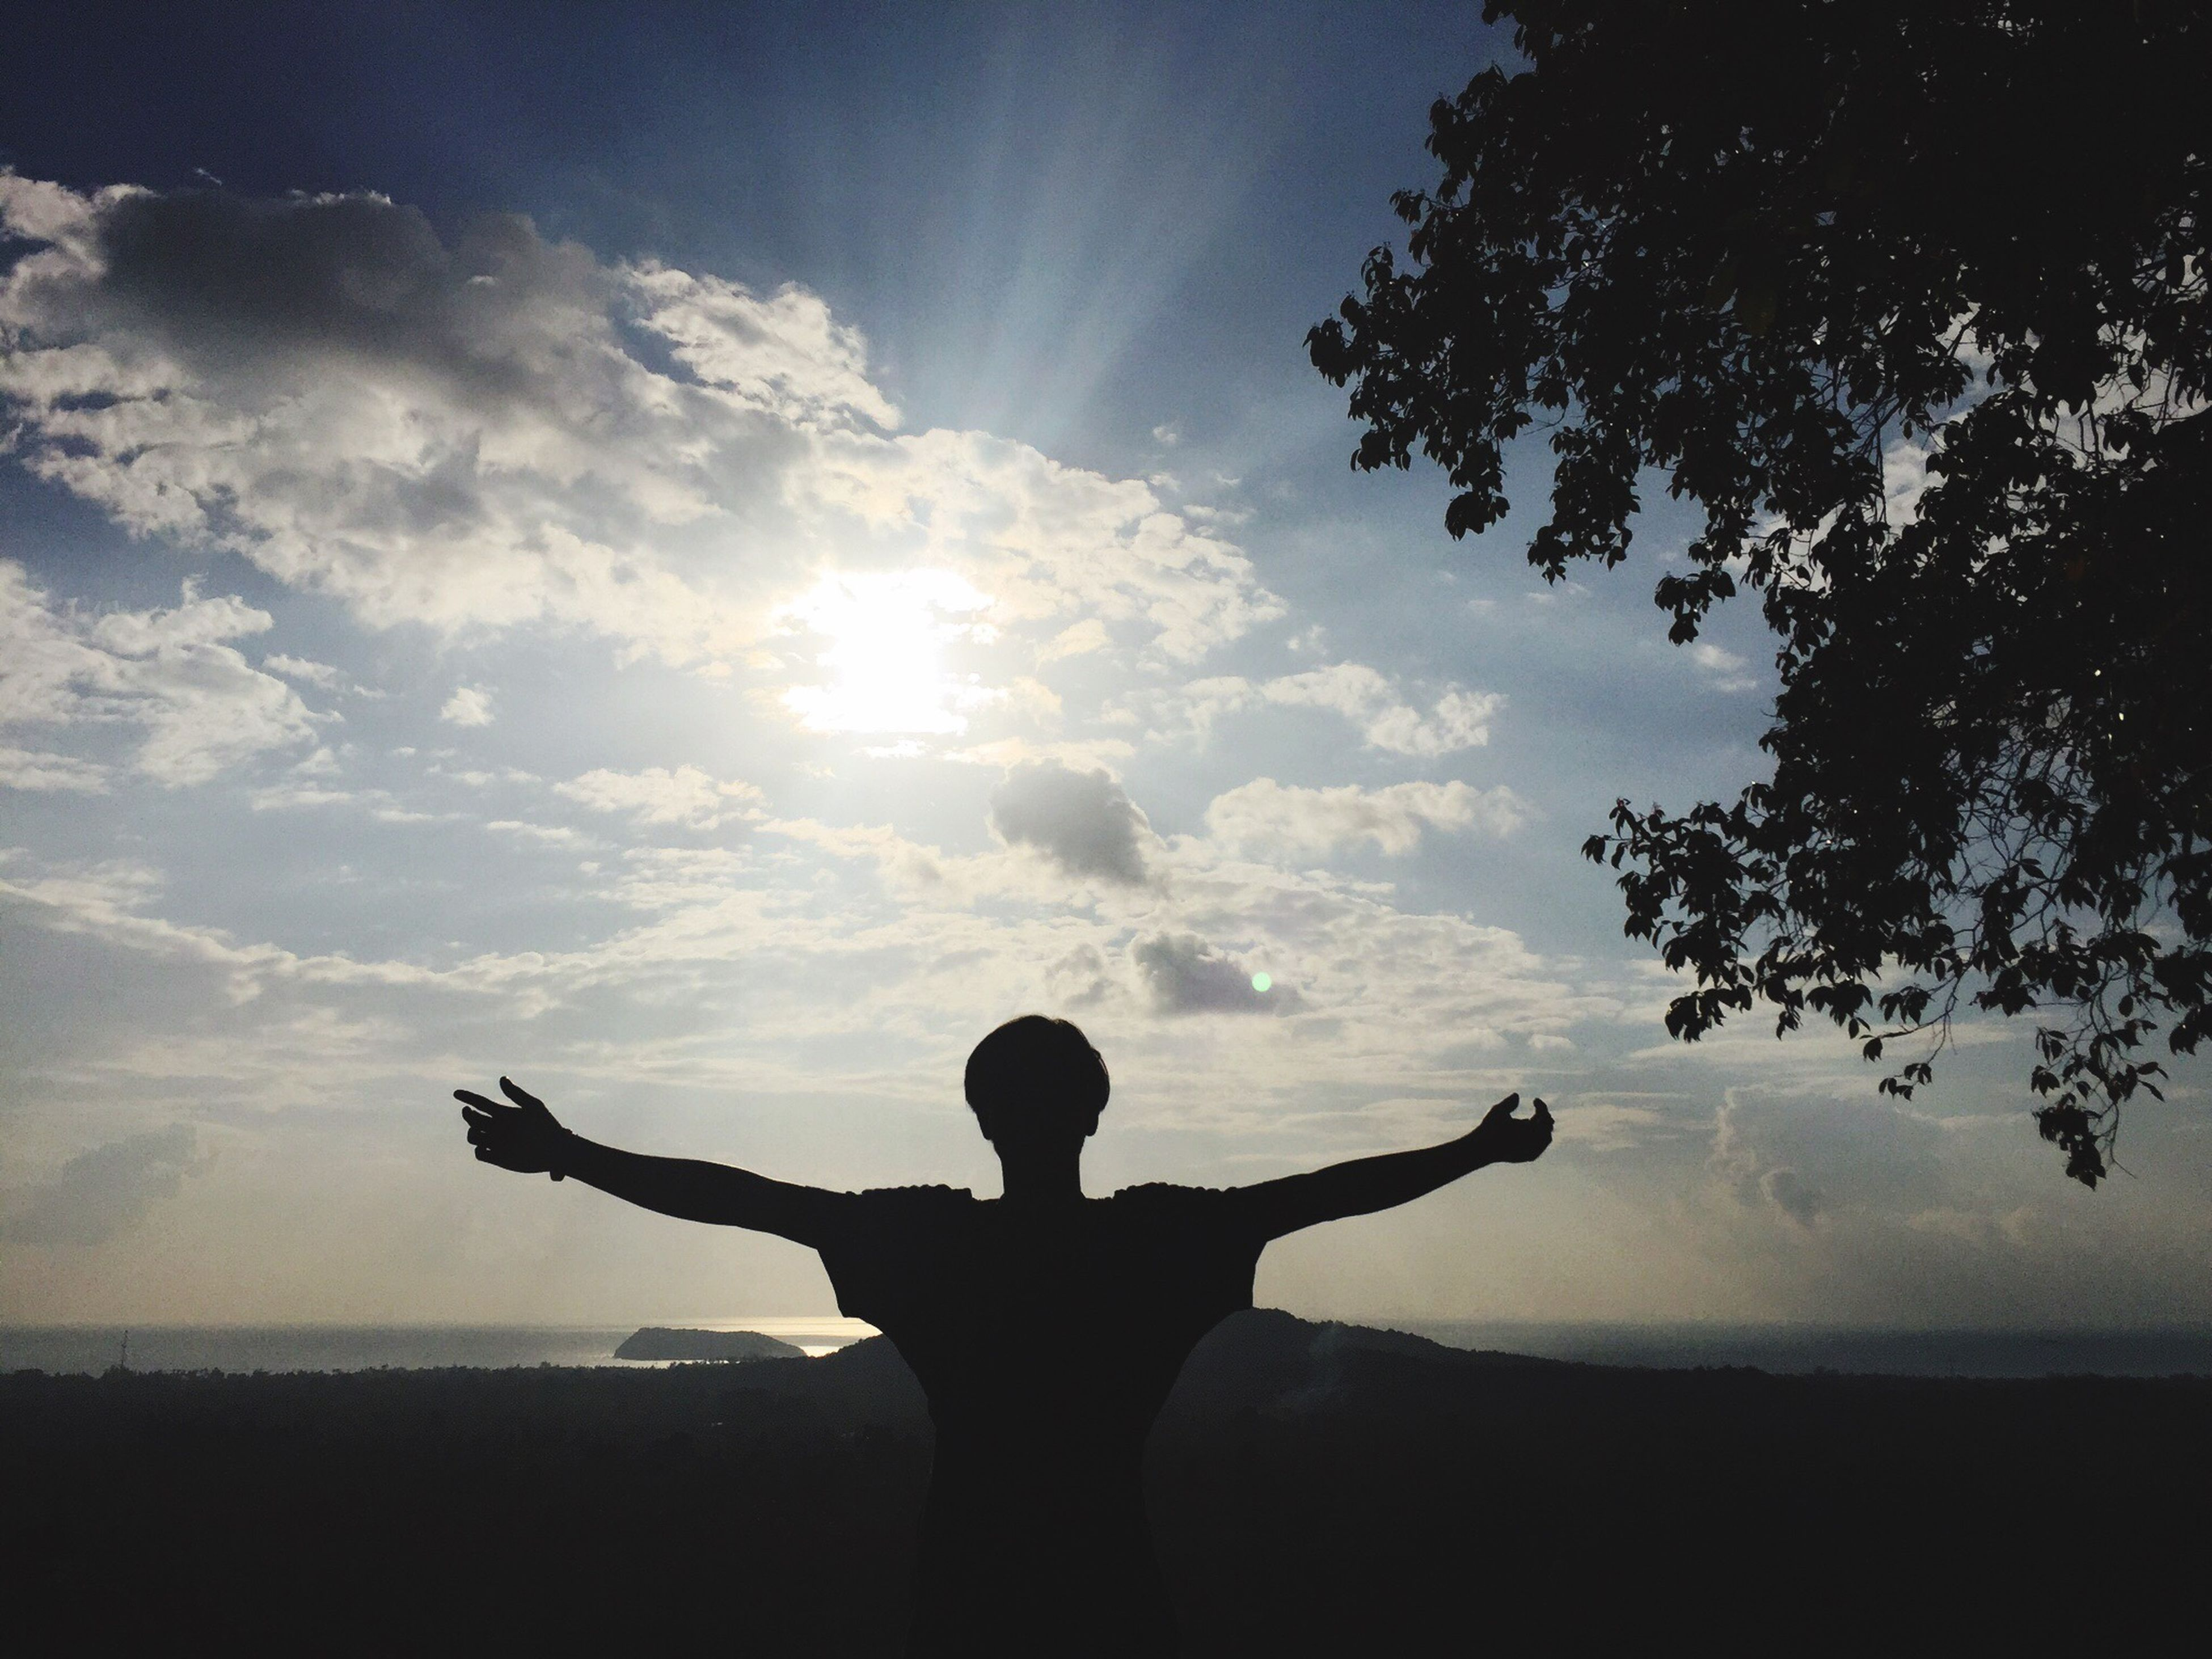 silhouette, sky, leisure activity, sun, lifestyles, sunlight, full length, tranquility, standing, cloud - sky, tranquil scene, tree, nature, beauty in nature, sunbeam, rear view, men, childhood